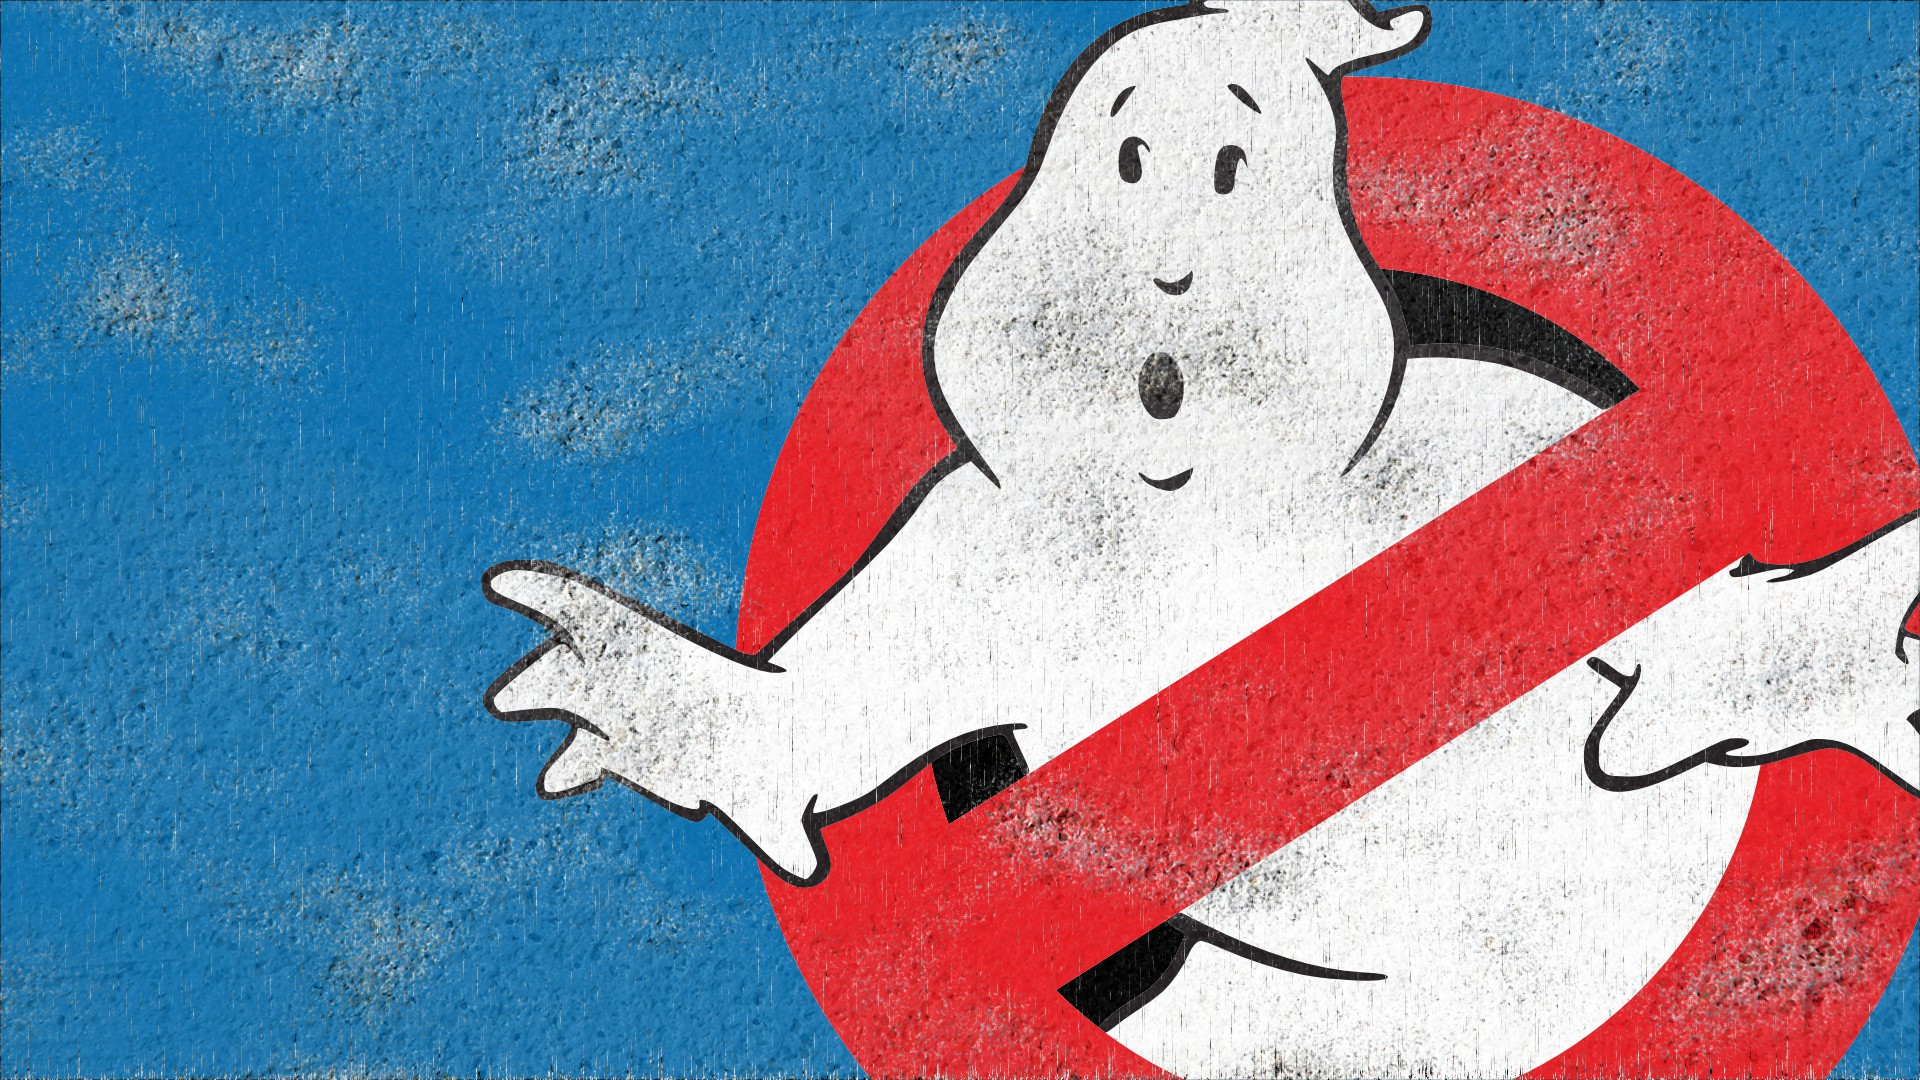 Collection of Ghostbusters Wallpapers on HDWallpapers